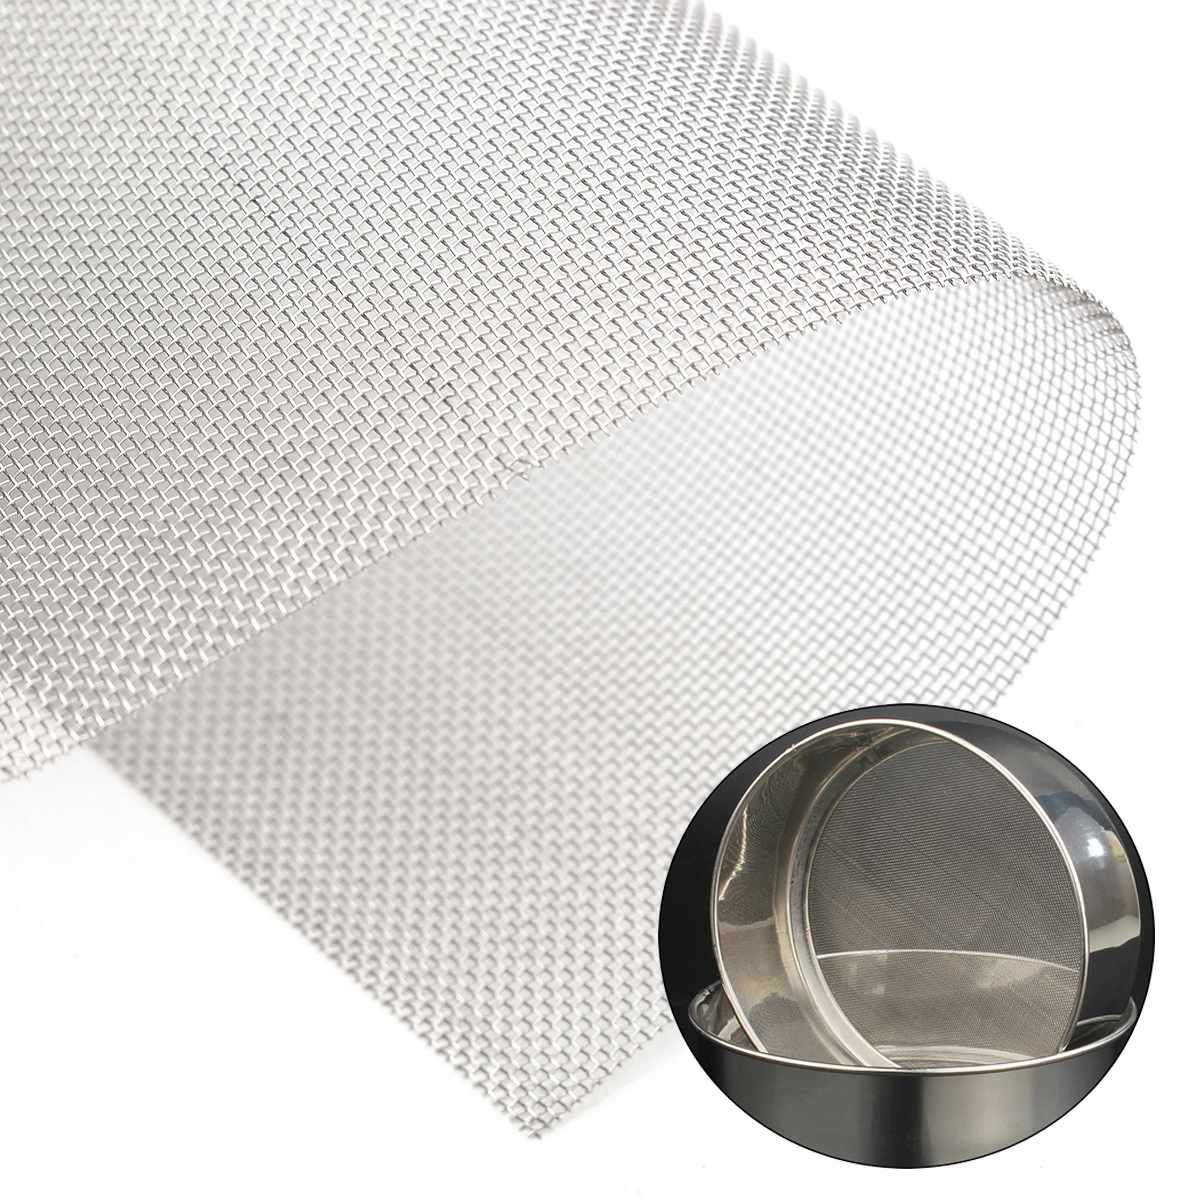 1pc 15x15cm Stainless Steel Woven Wire High Quality <font><b>Screening</b></font> Filter Sheet 30 Mesh image